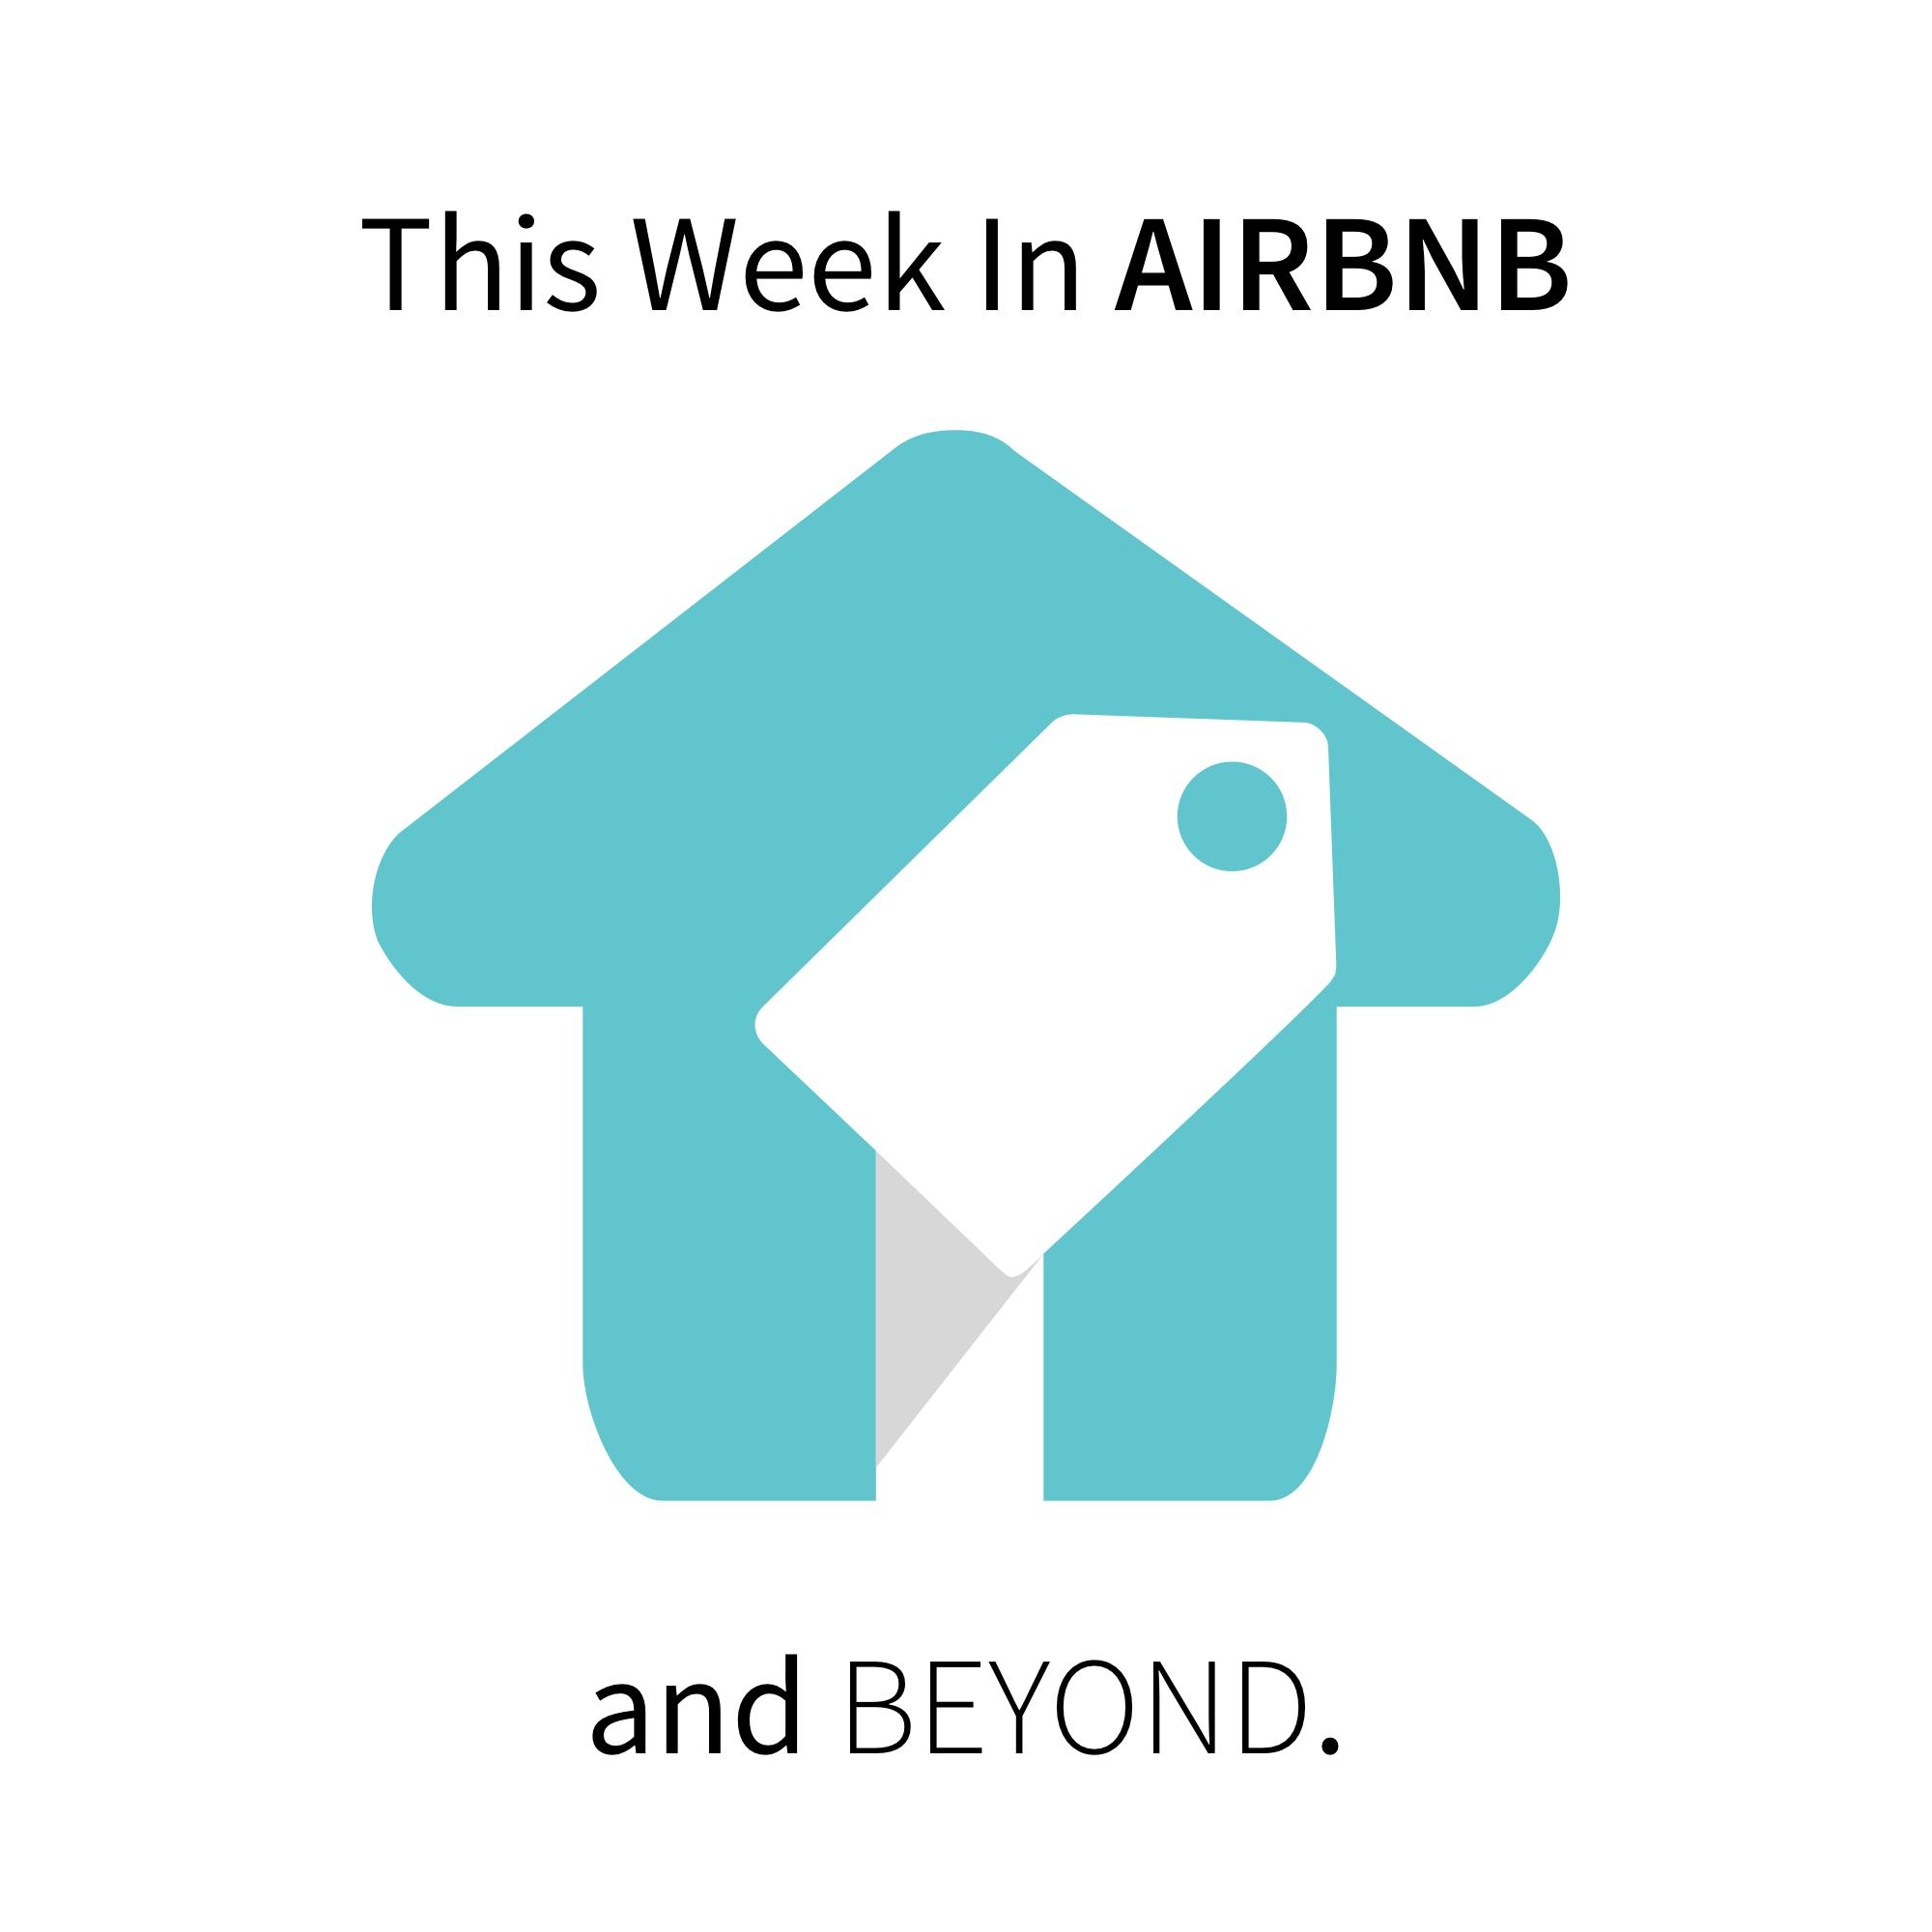 This Week in Airbnb - and Beyond